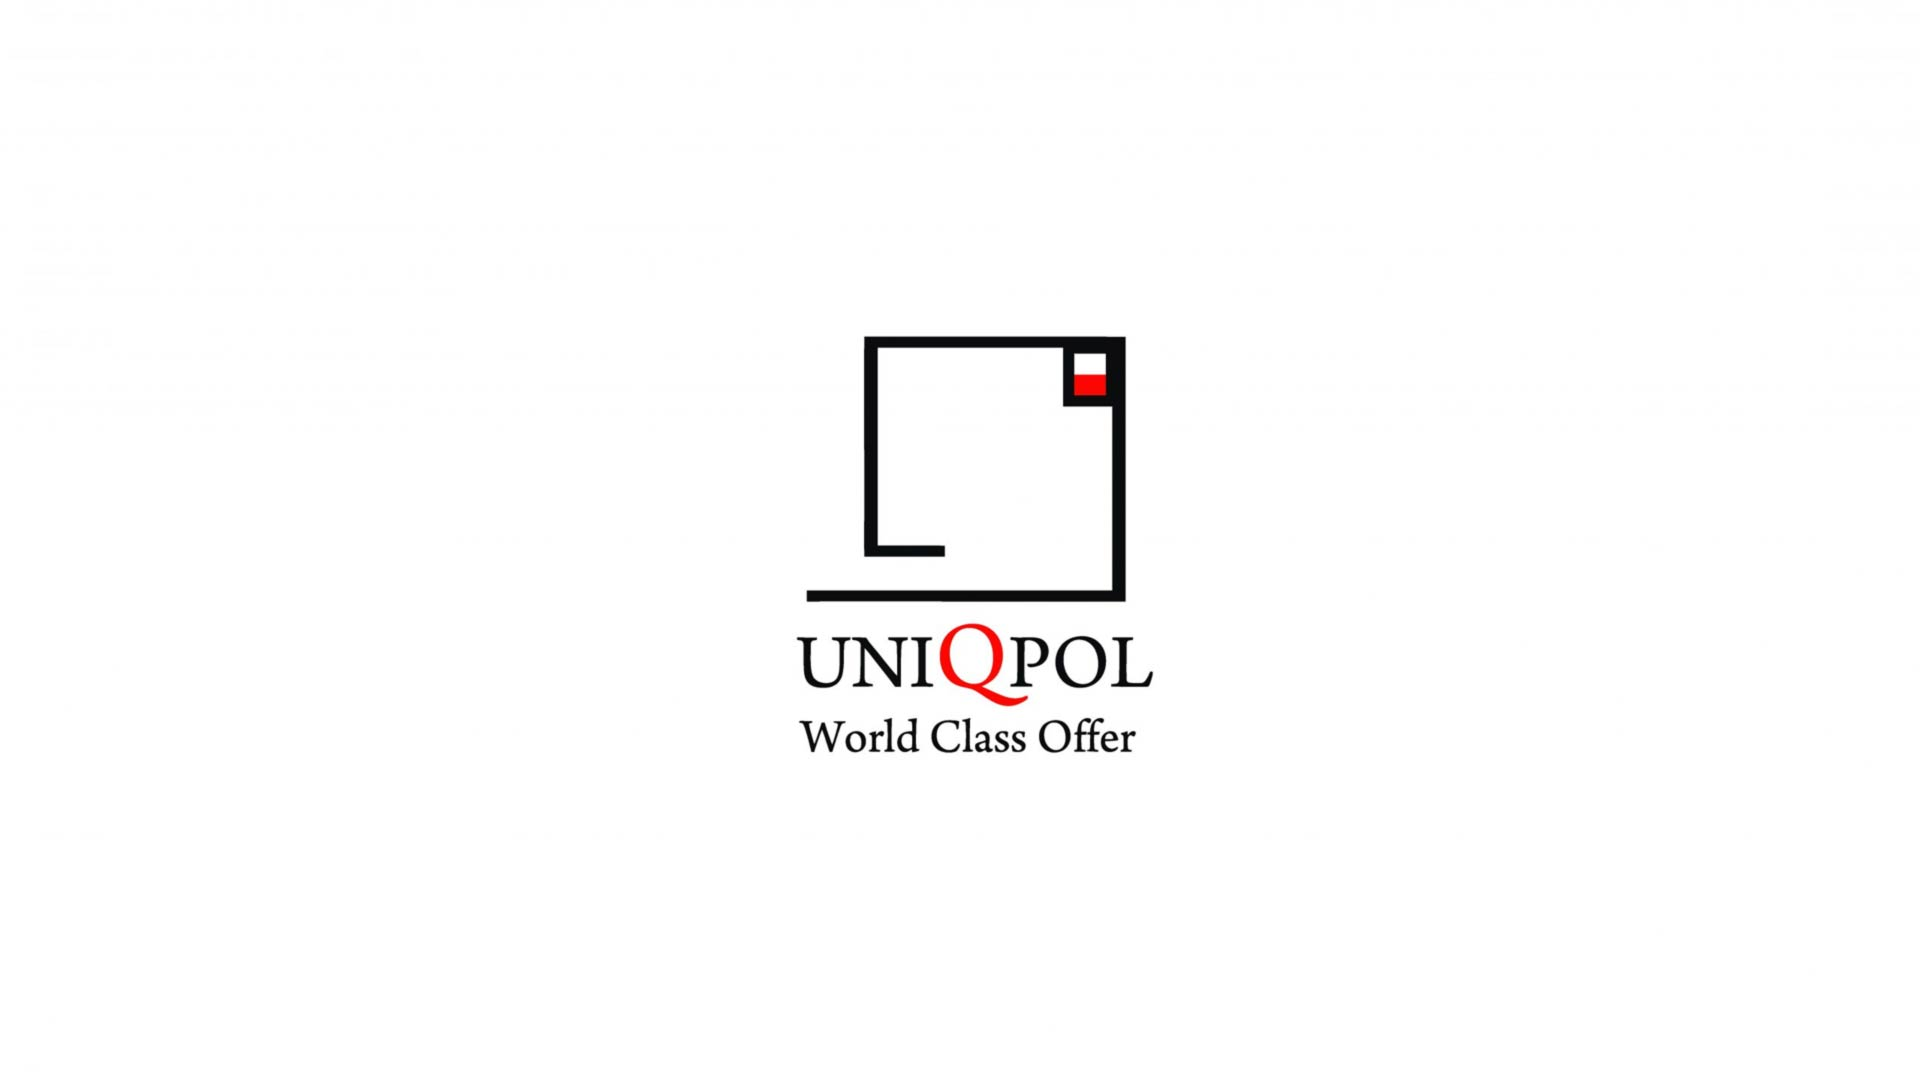 Nagroda UNIQPOL World Class Offer dla iBlockFIRE – 01.03.2020 r.